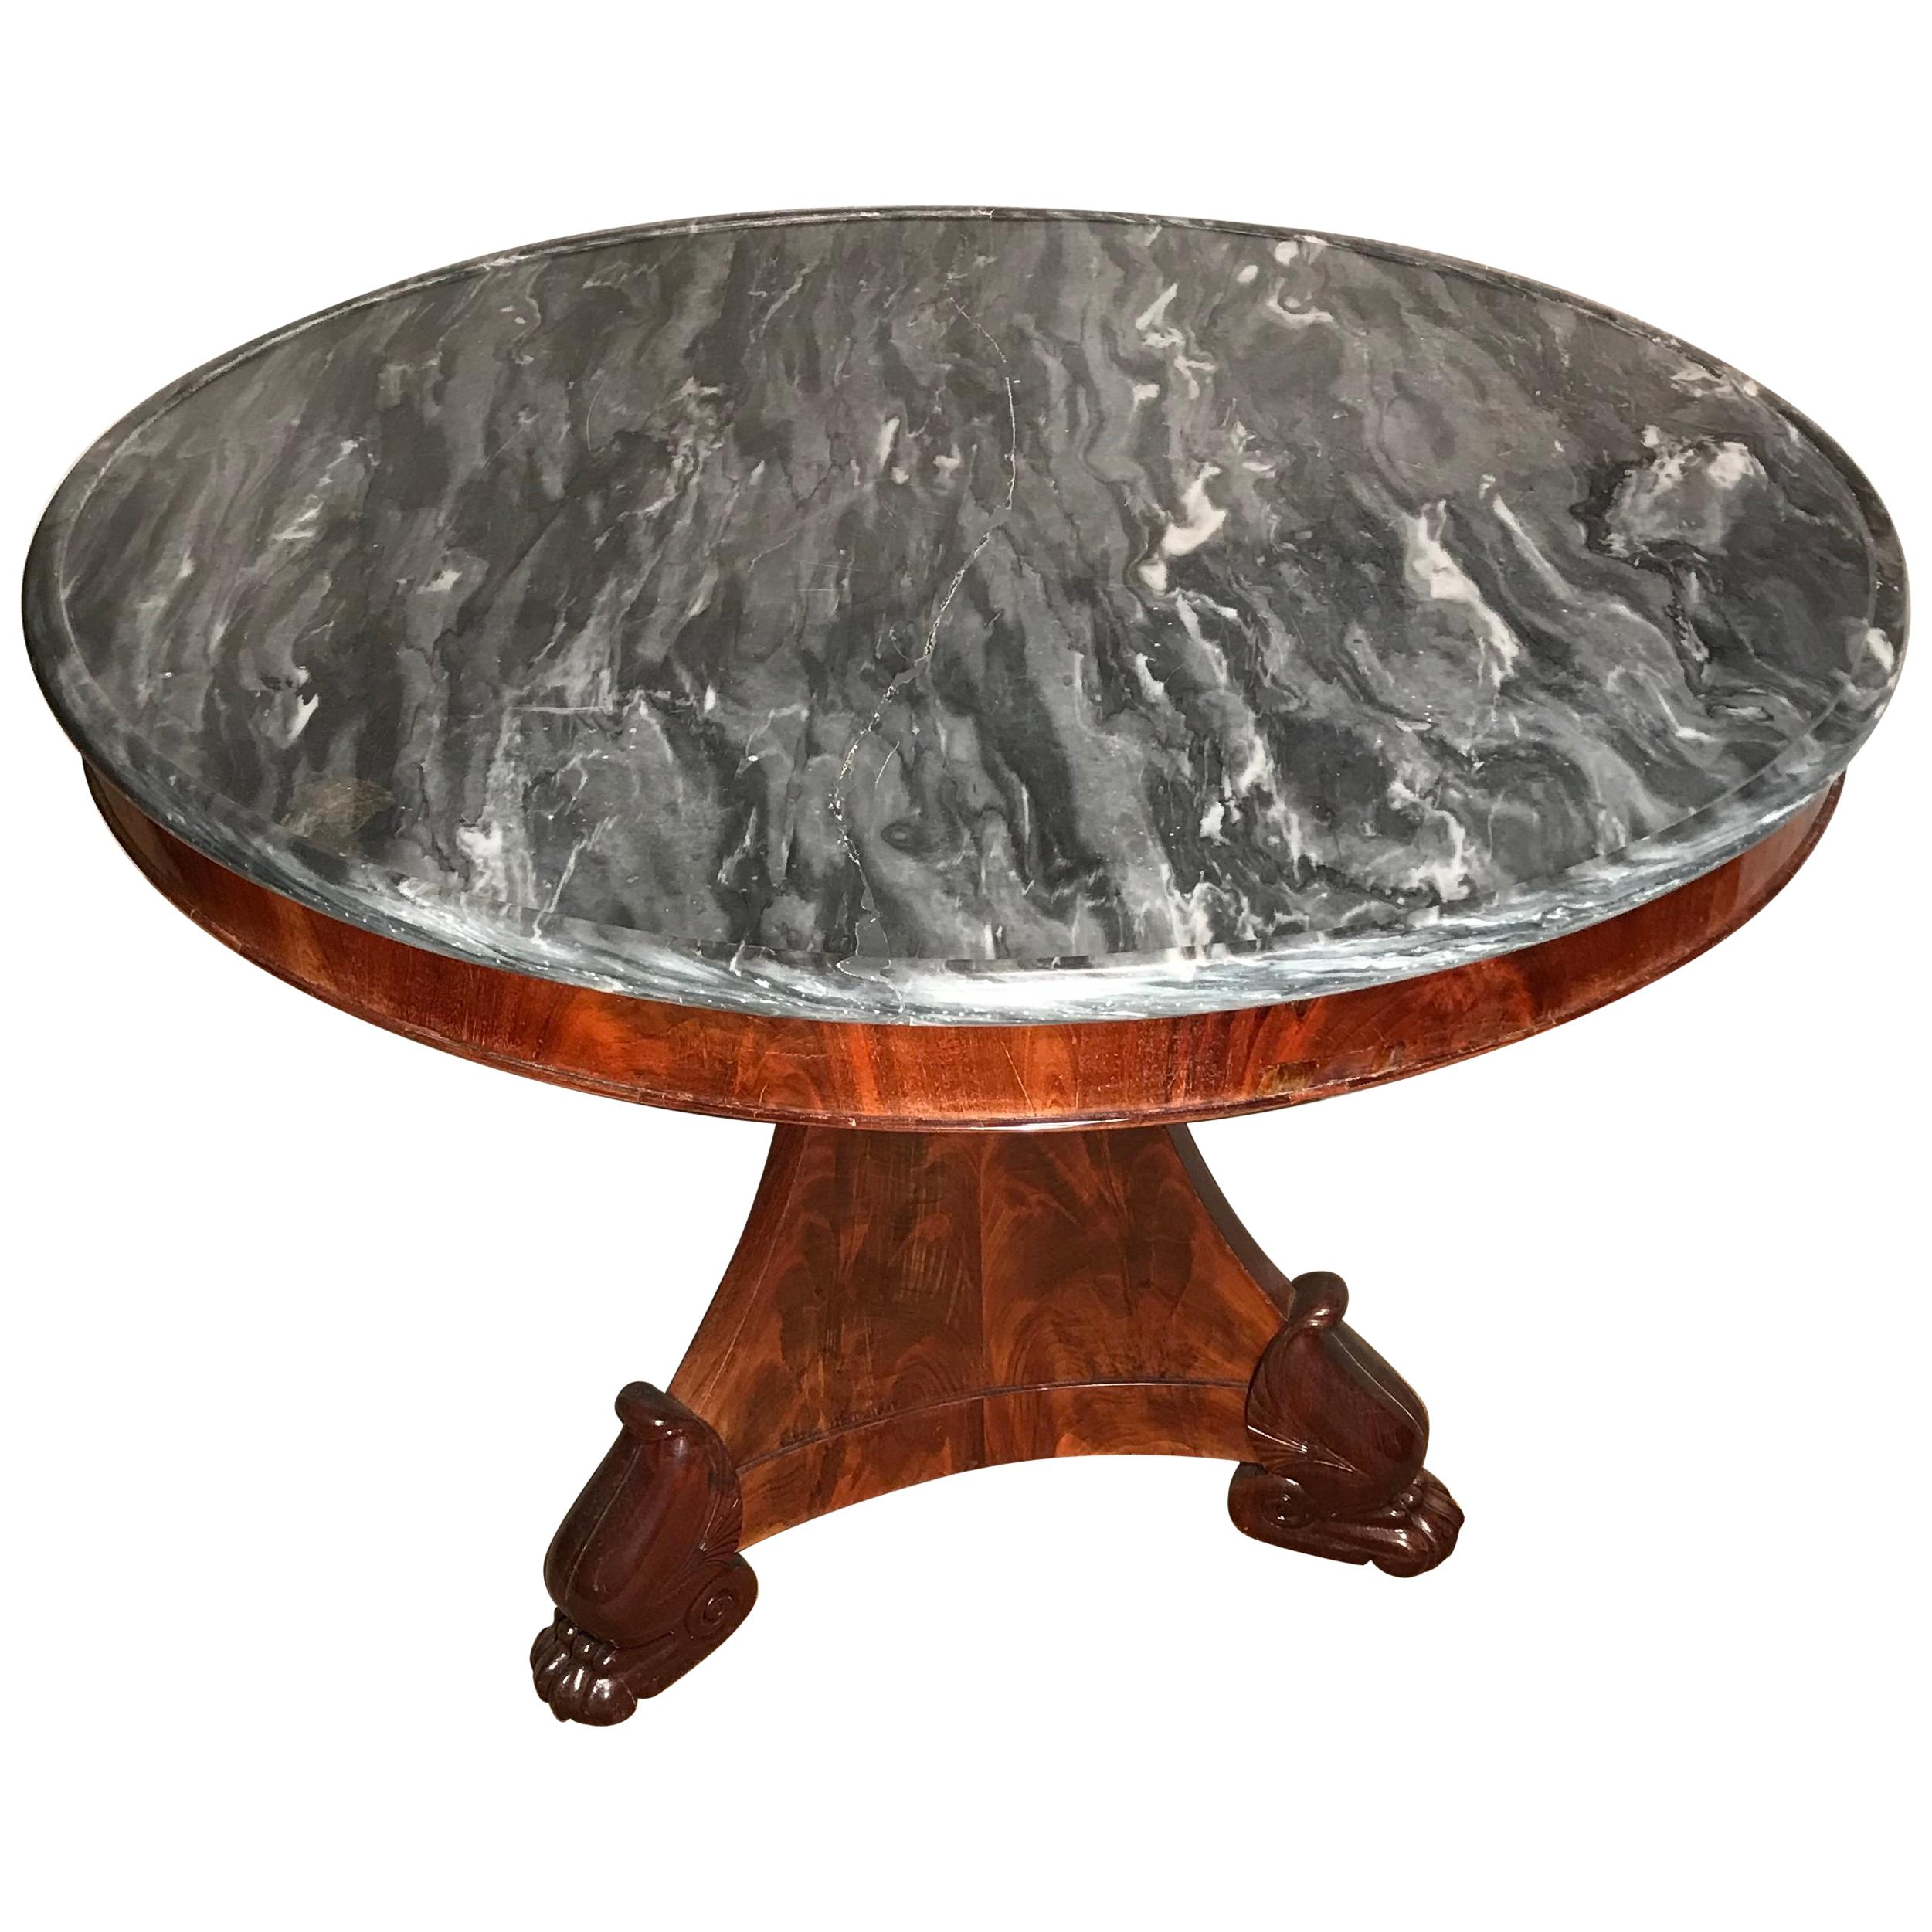 French Restauration Period Center Table, 1820